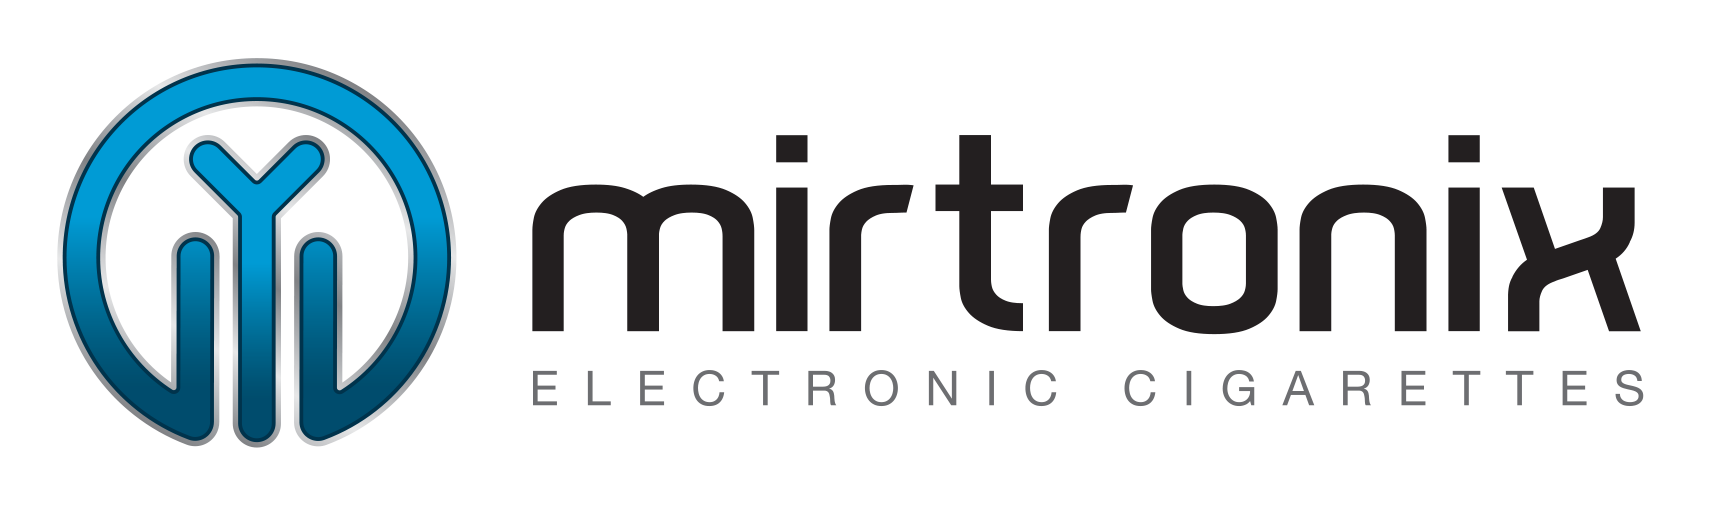 Mirtronix